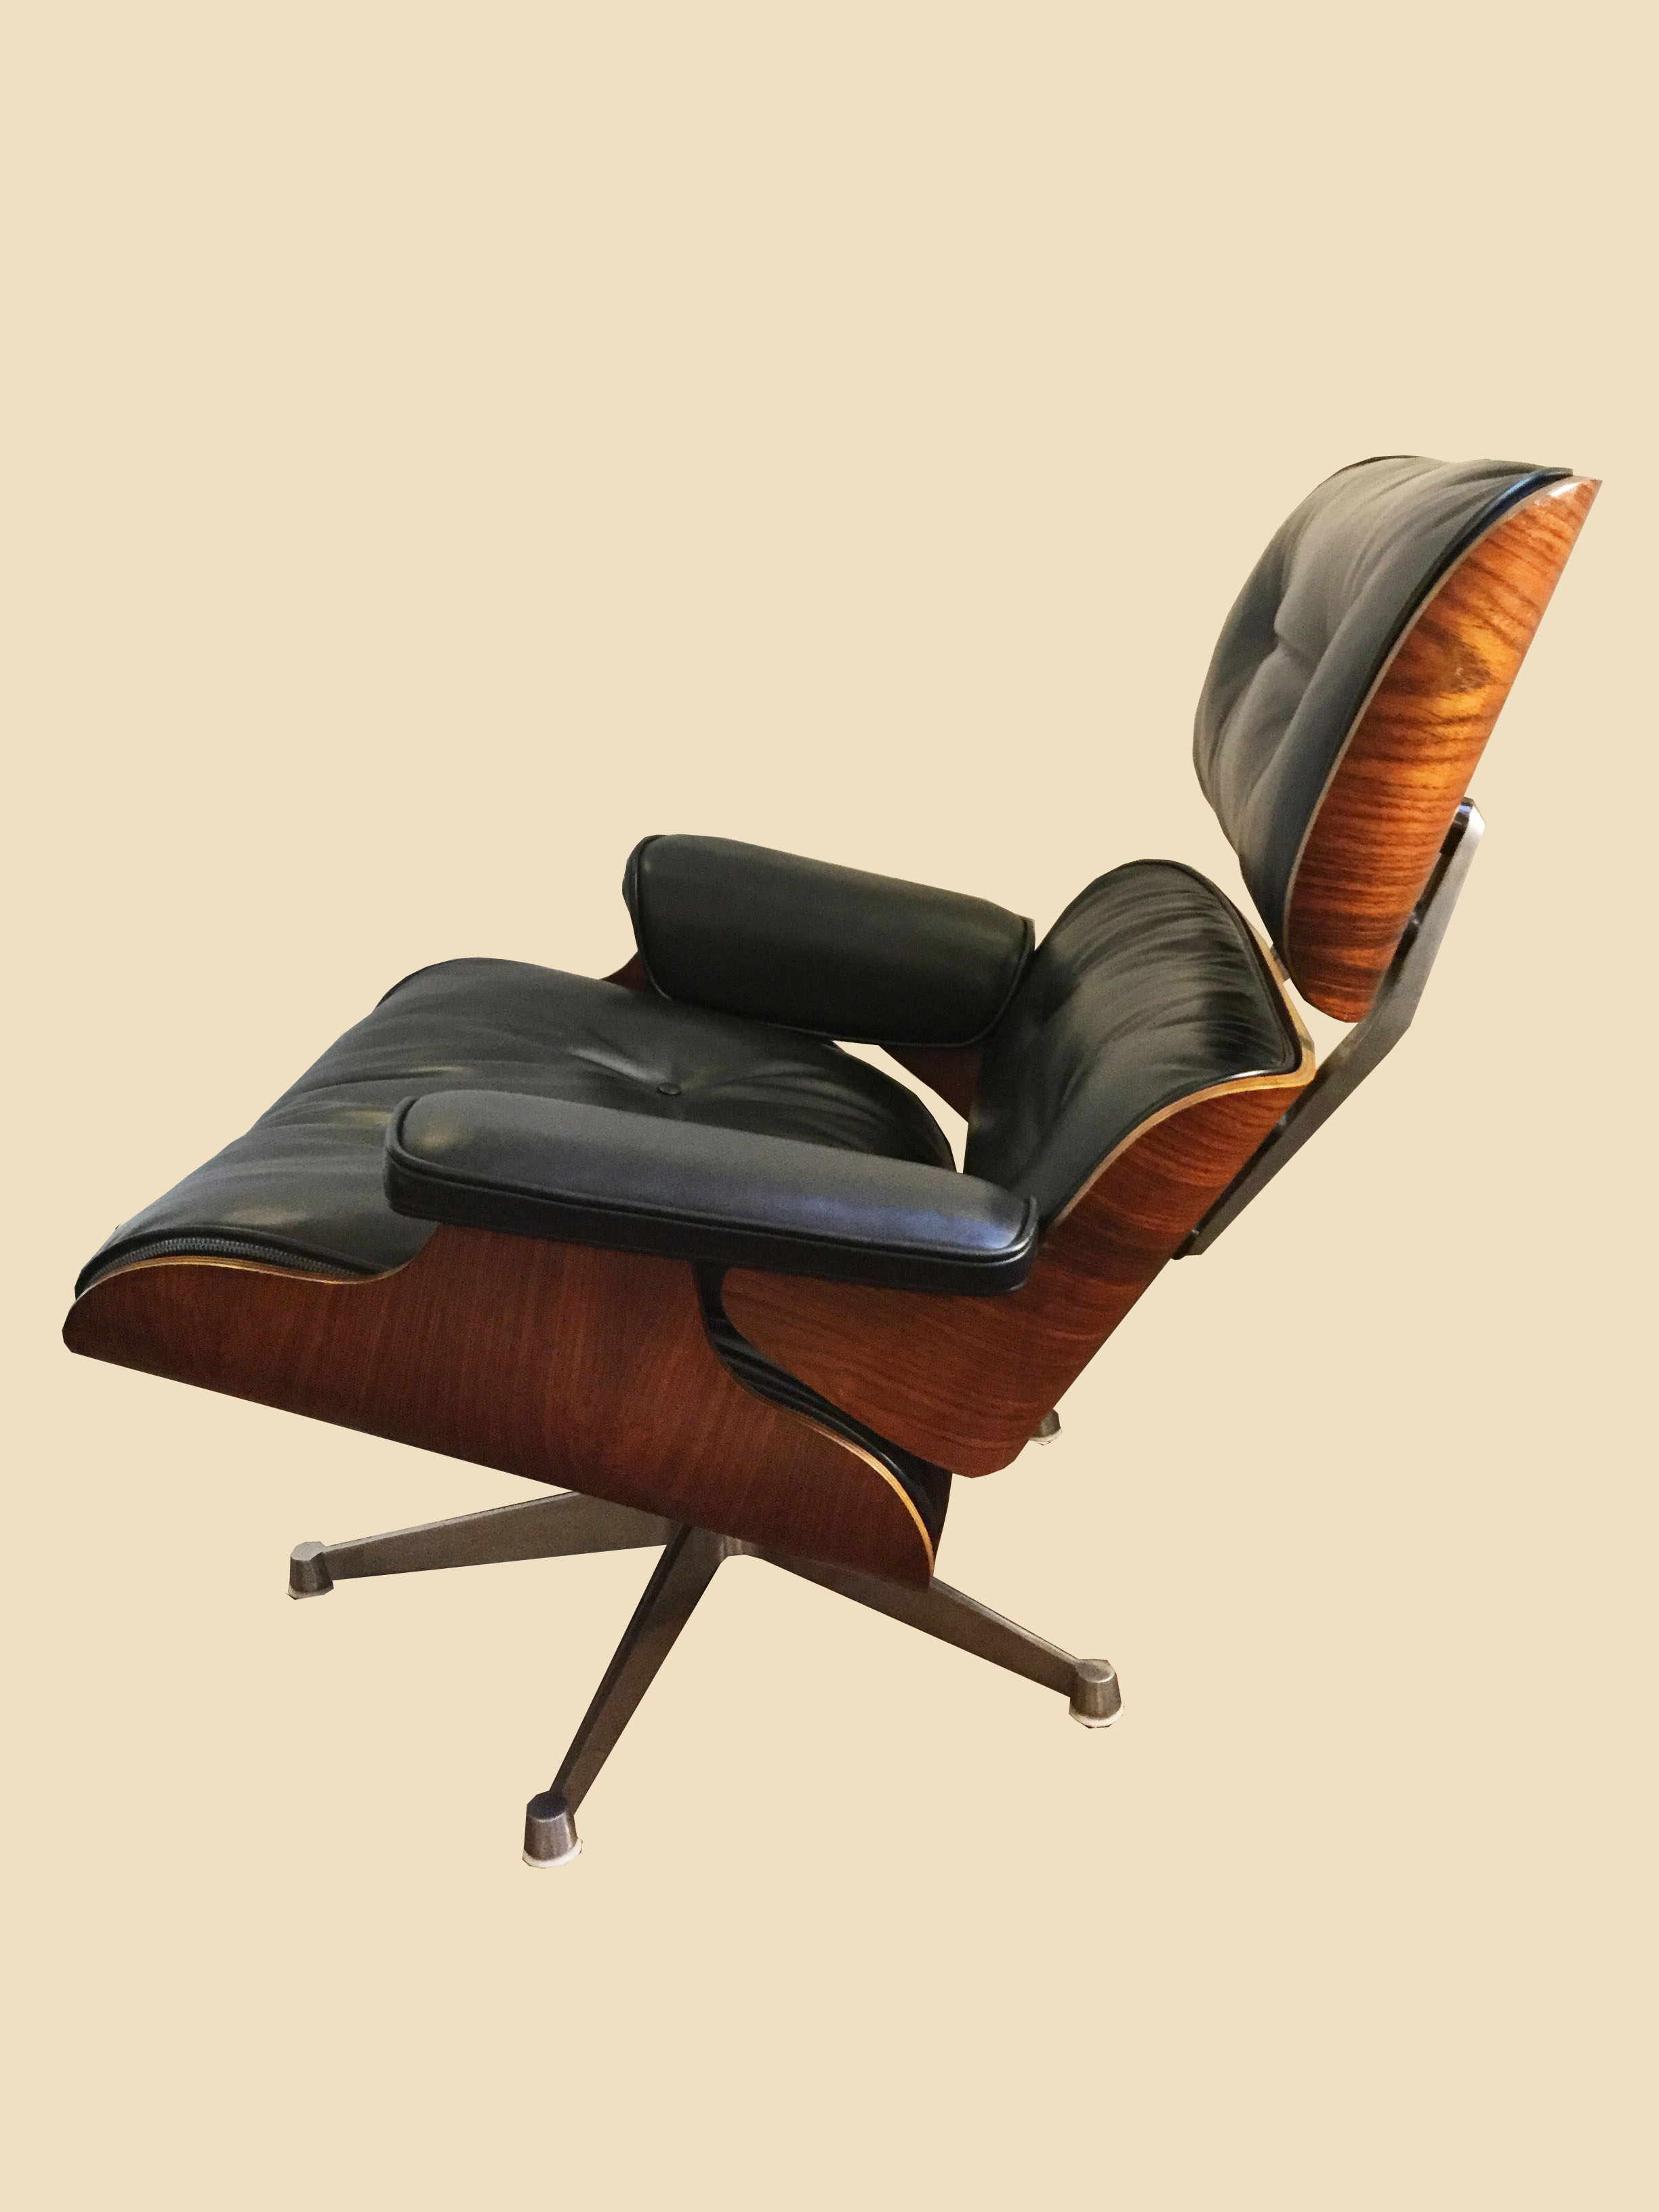 Fauteuil lounge chair et ottoman charles ray eames for Copie fauteuil eames